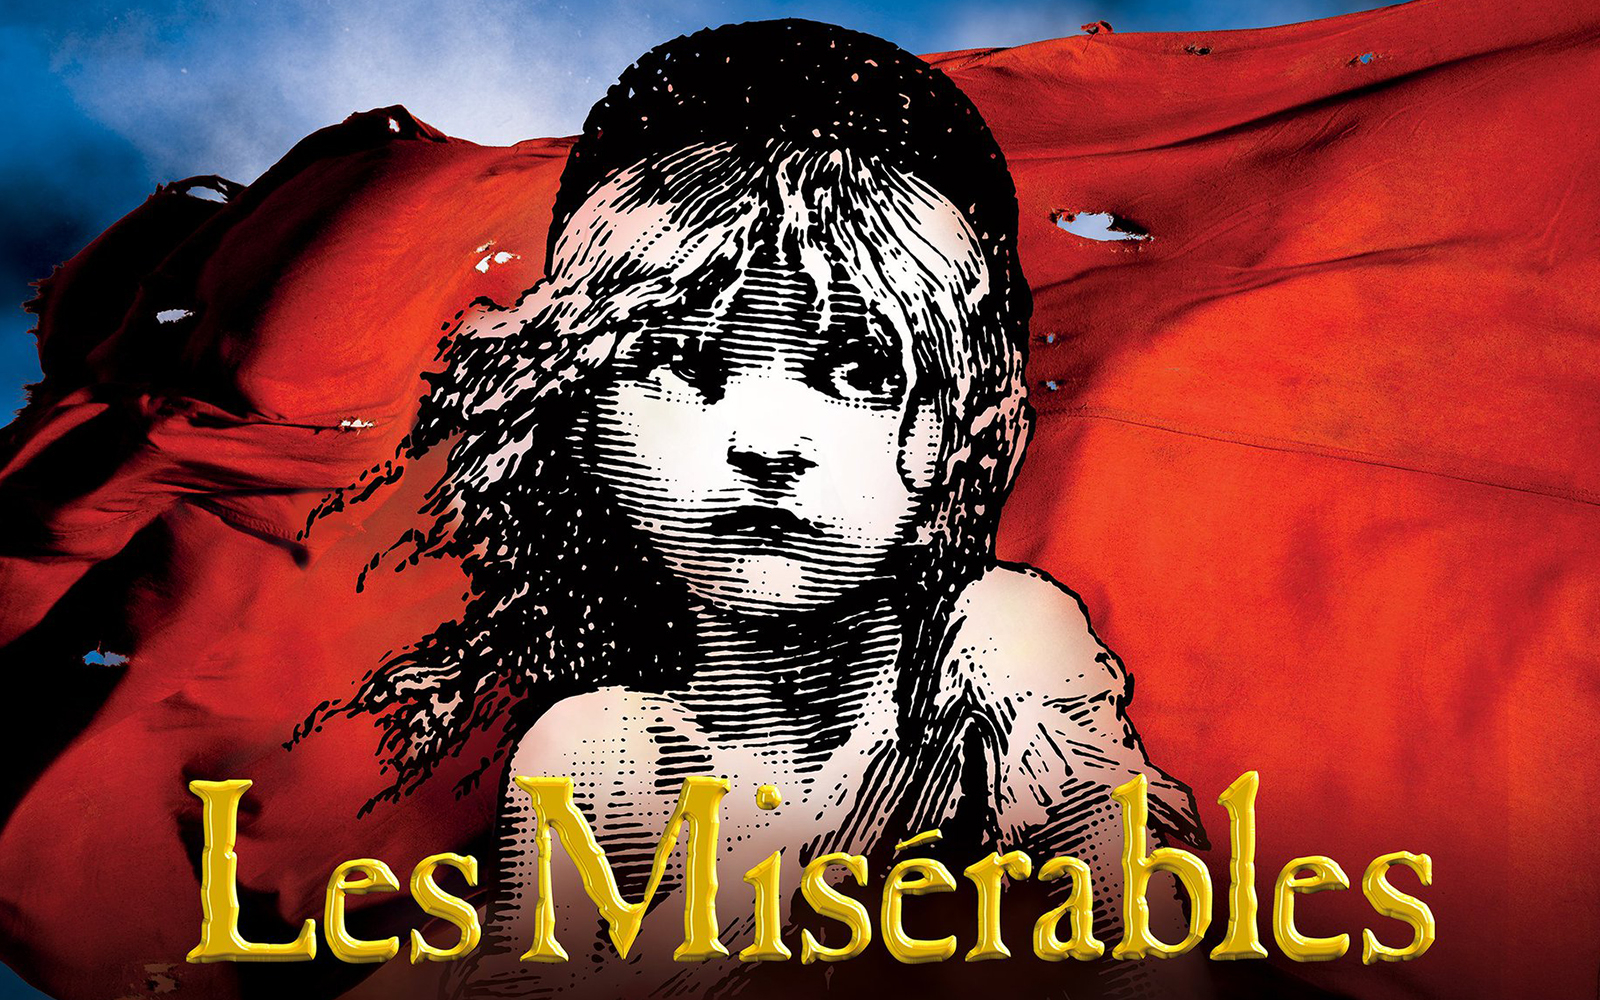 6630d942 71af 4aa7 bb68 ad2dad576f34 2863 london les miserables 01